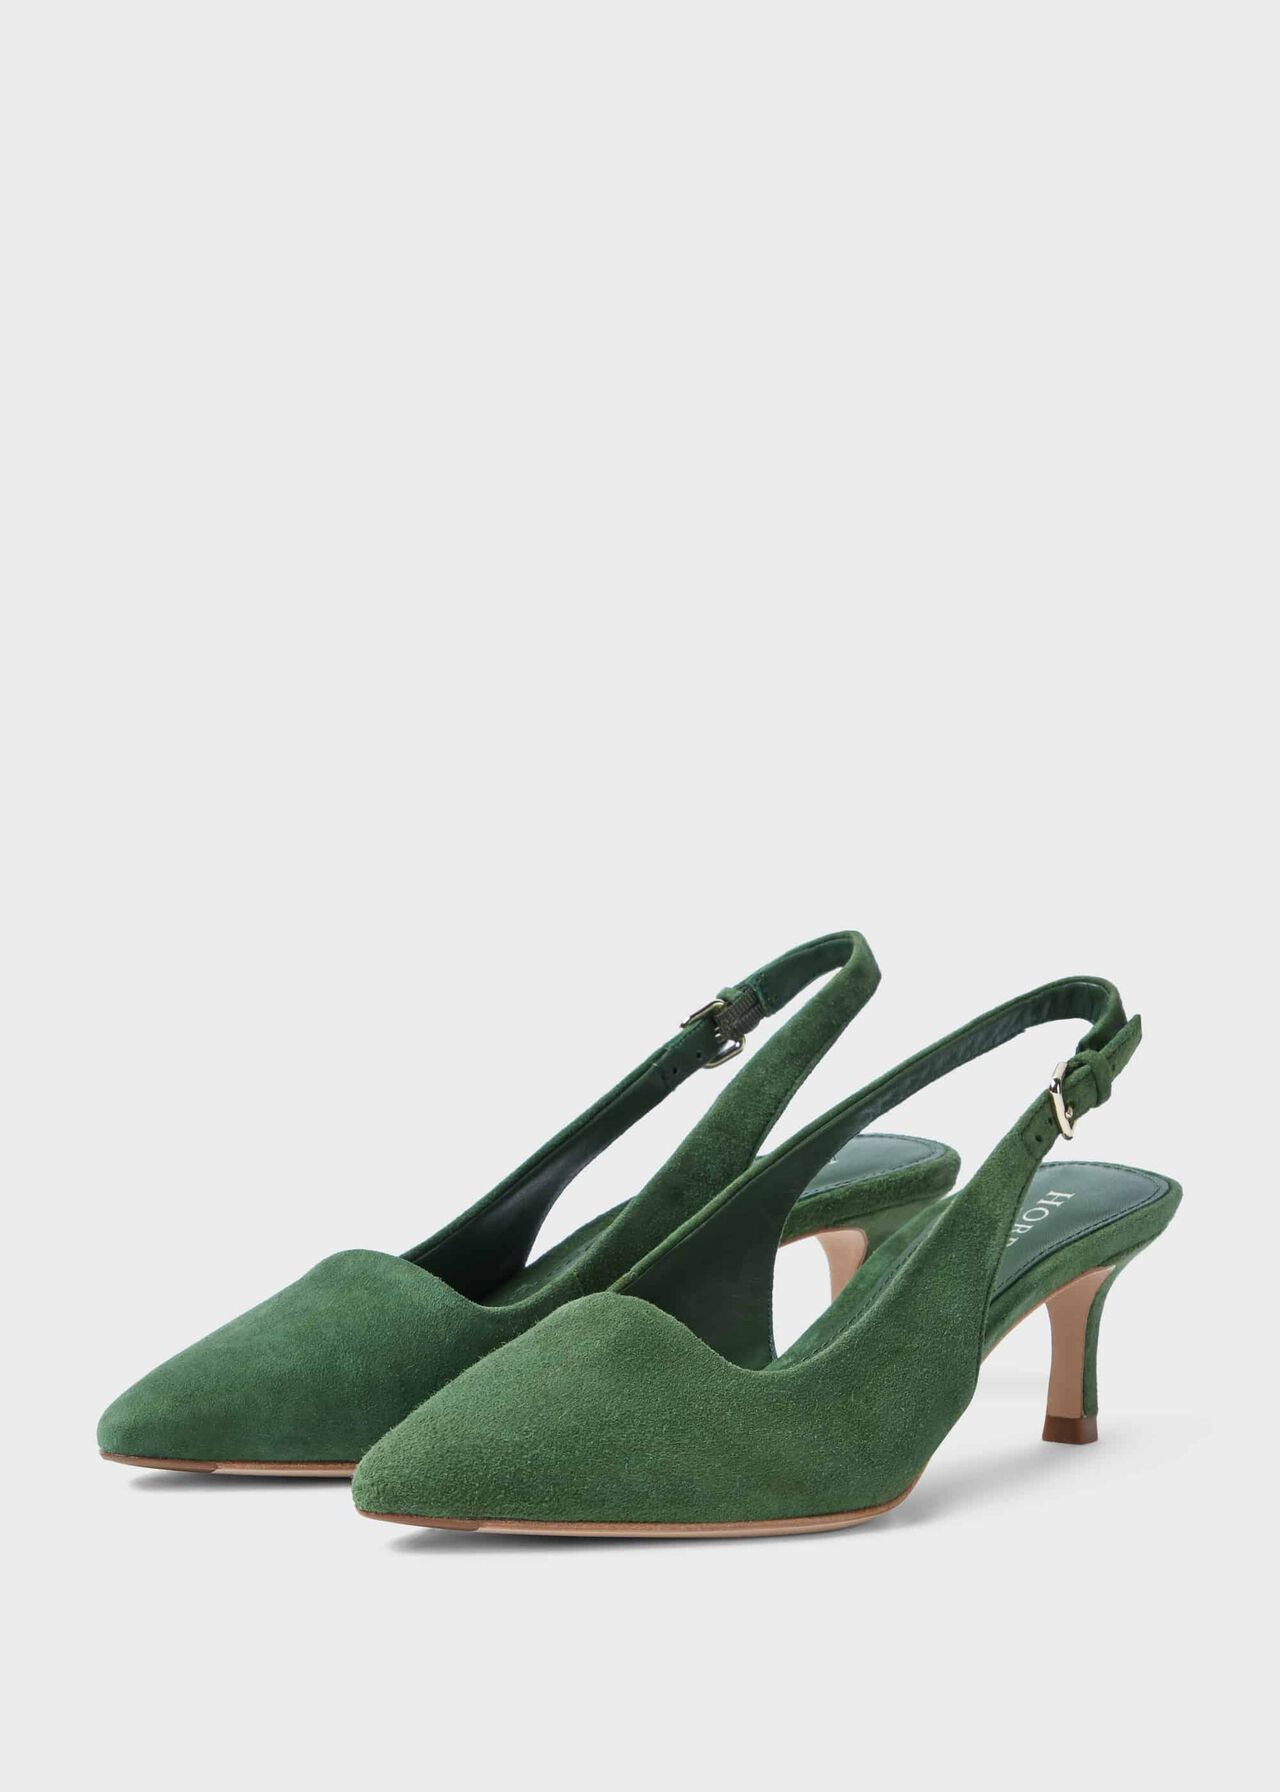 Kiera Suede Kitten Heel Slingbacks Court Shoes Fern Green